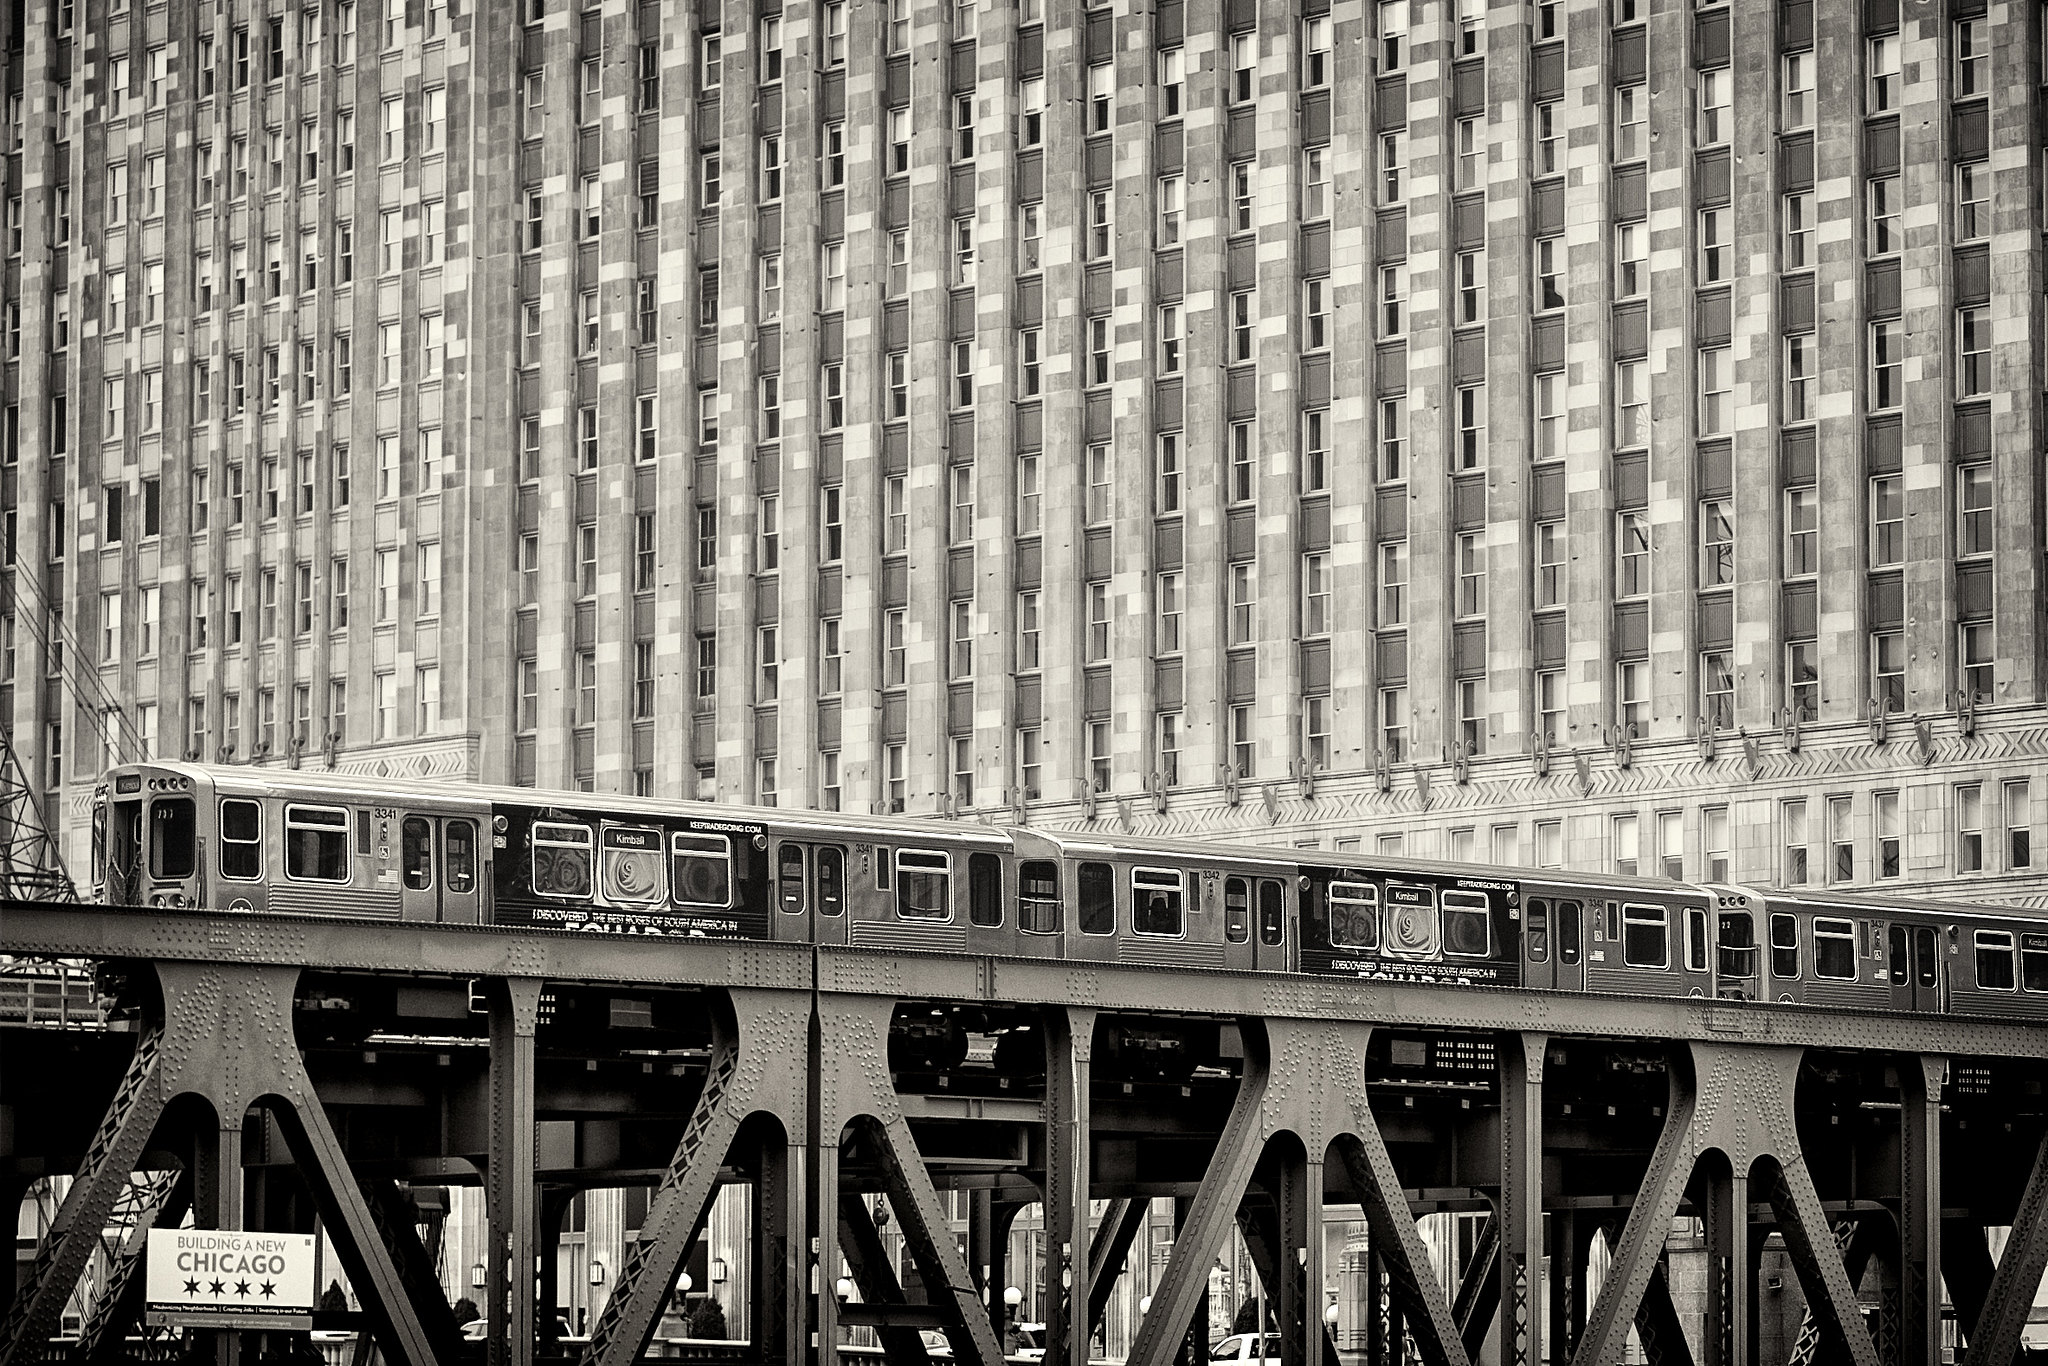 The L in front of the Merchandise Mart